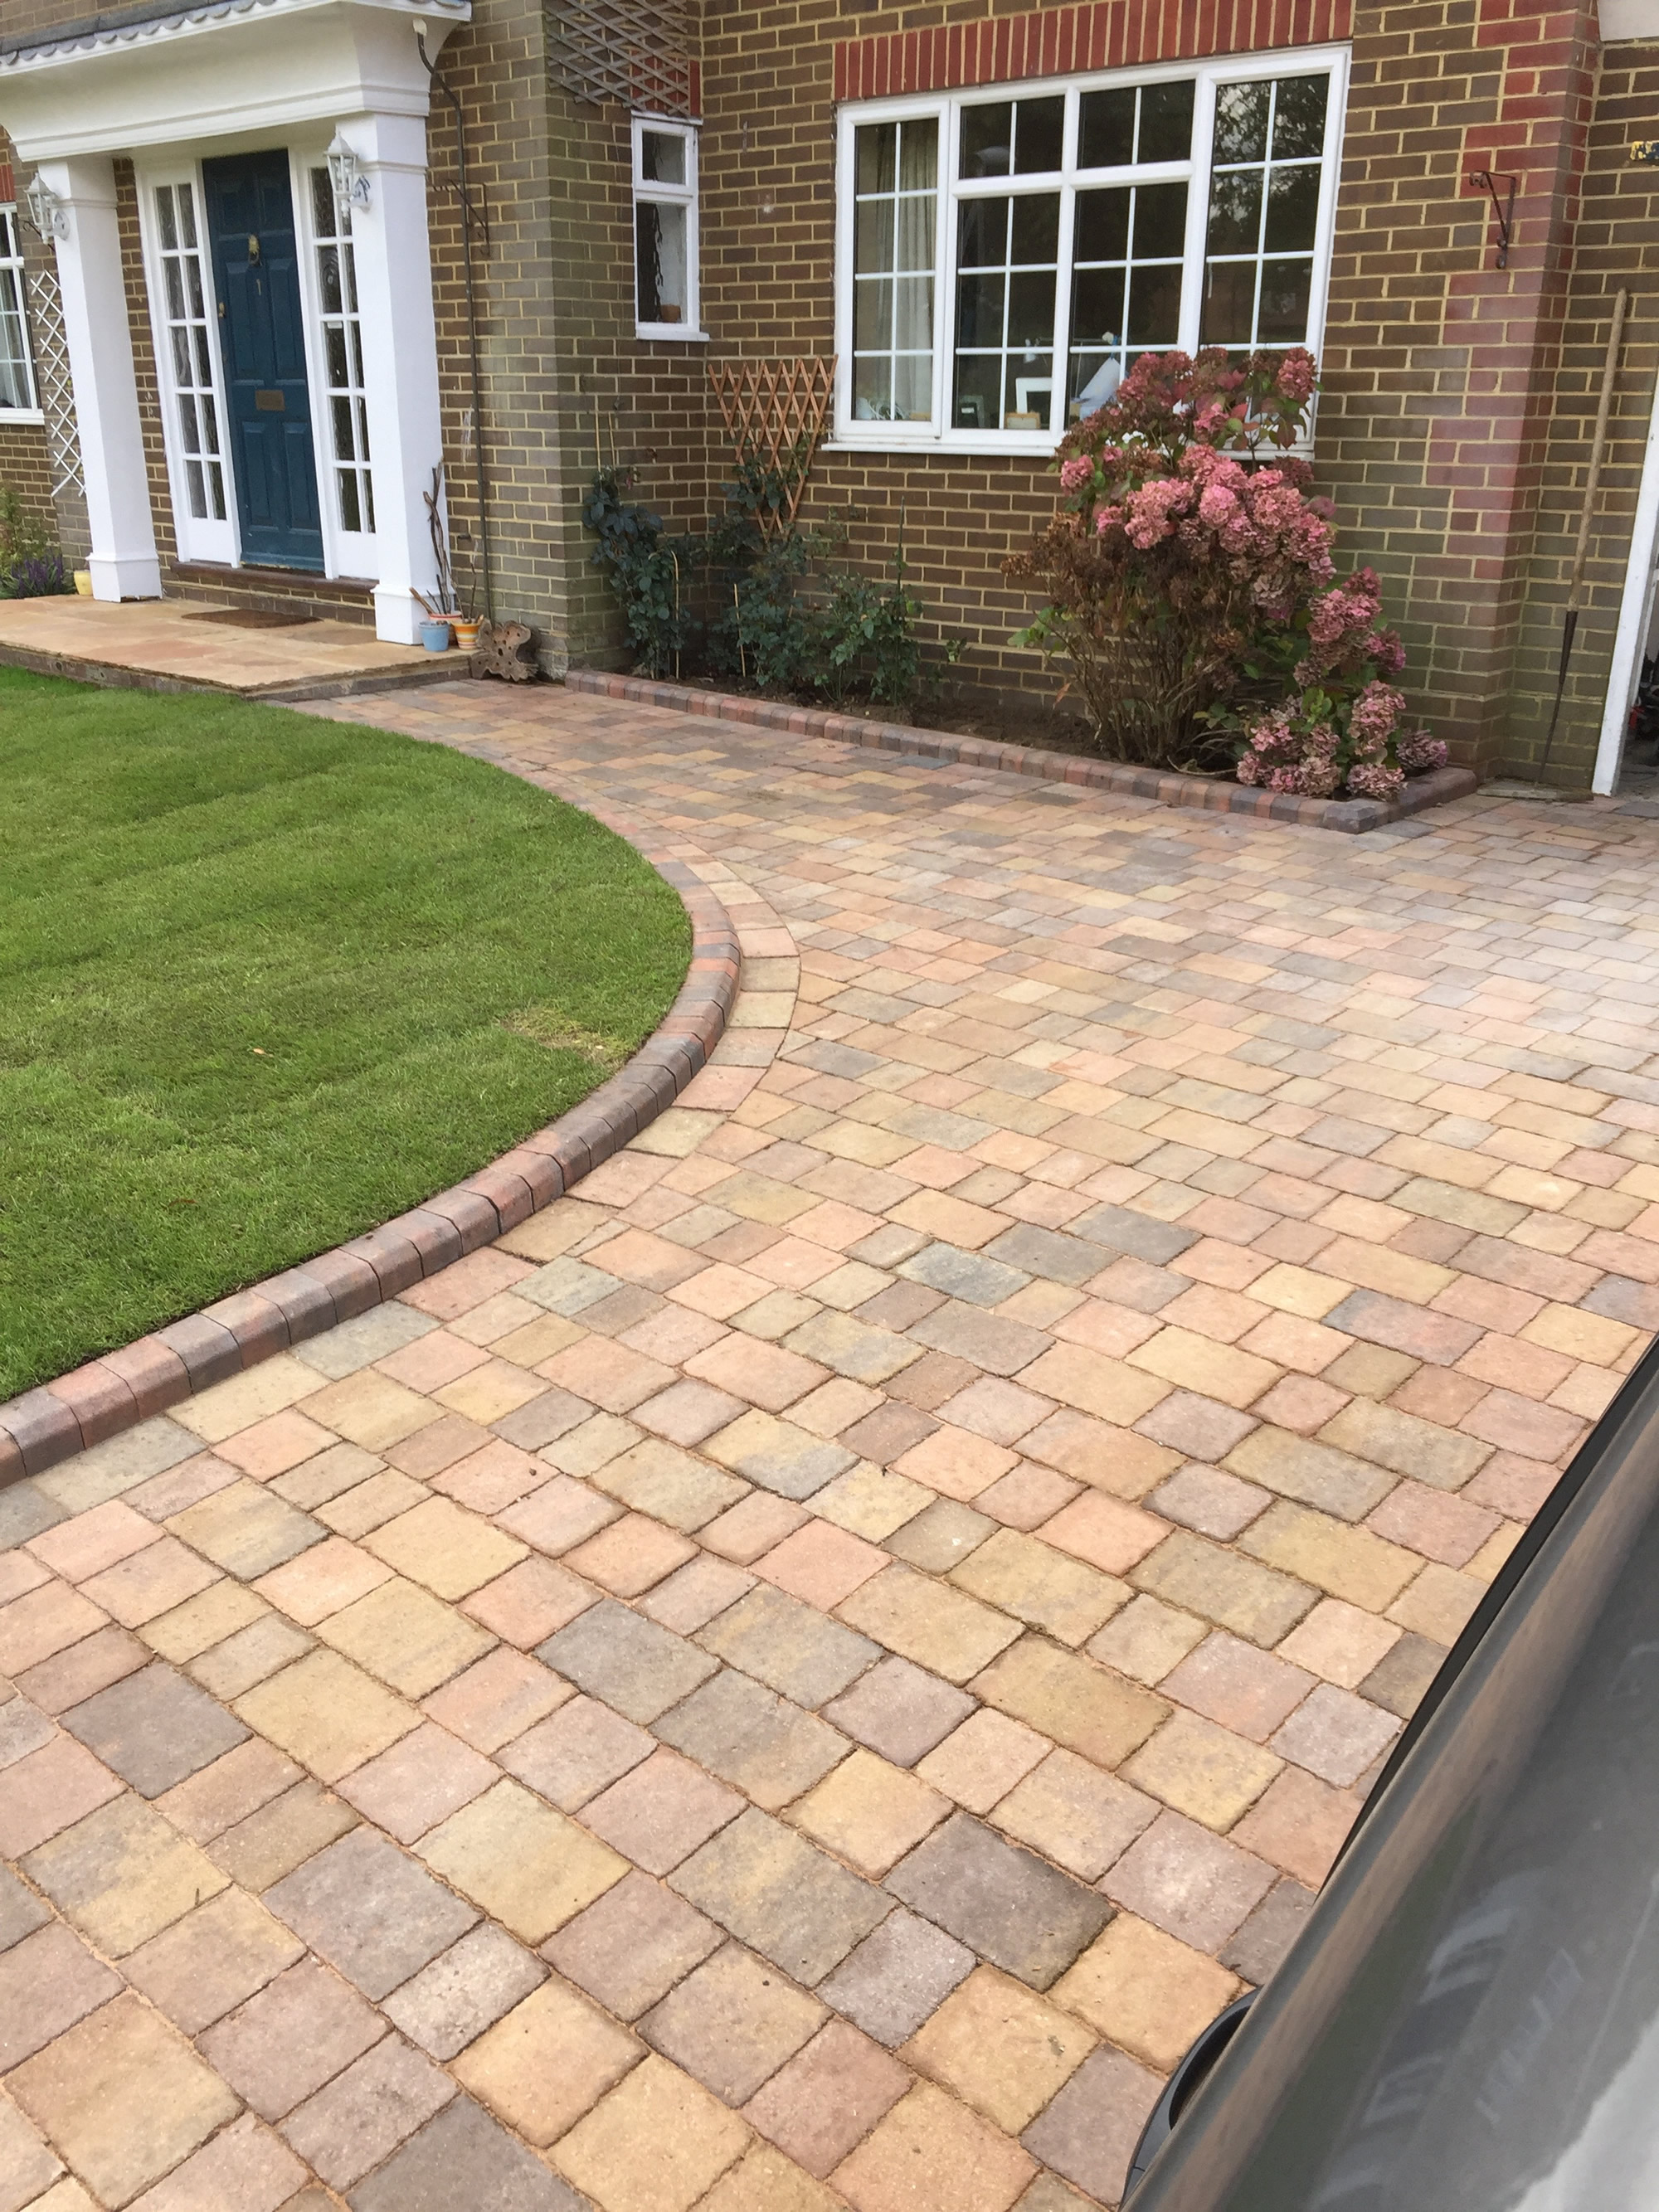 Lifetime driveways in kent driveway get top praise for New driveway ideas